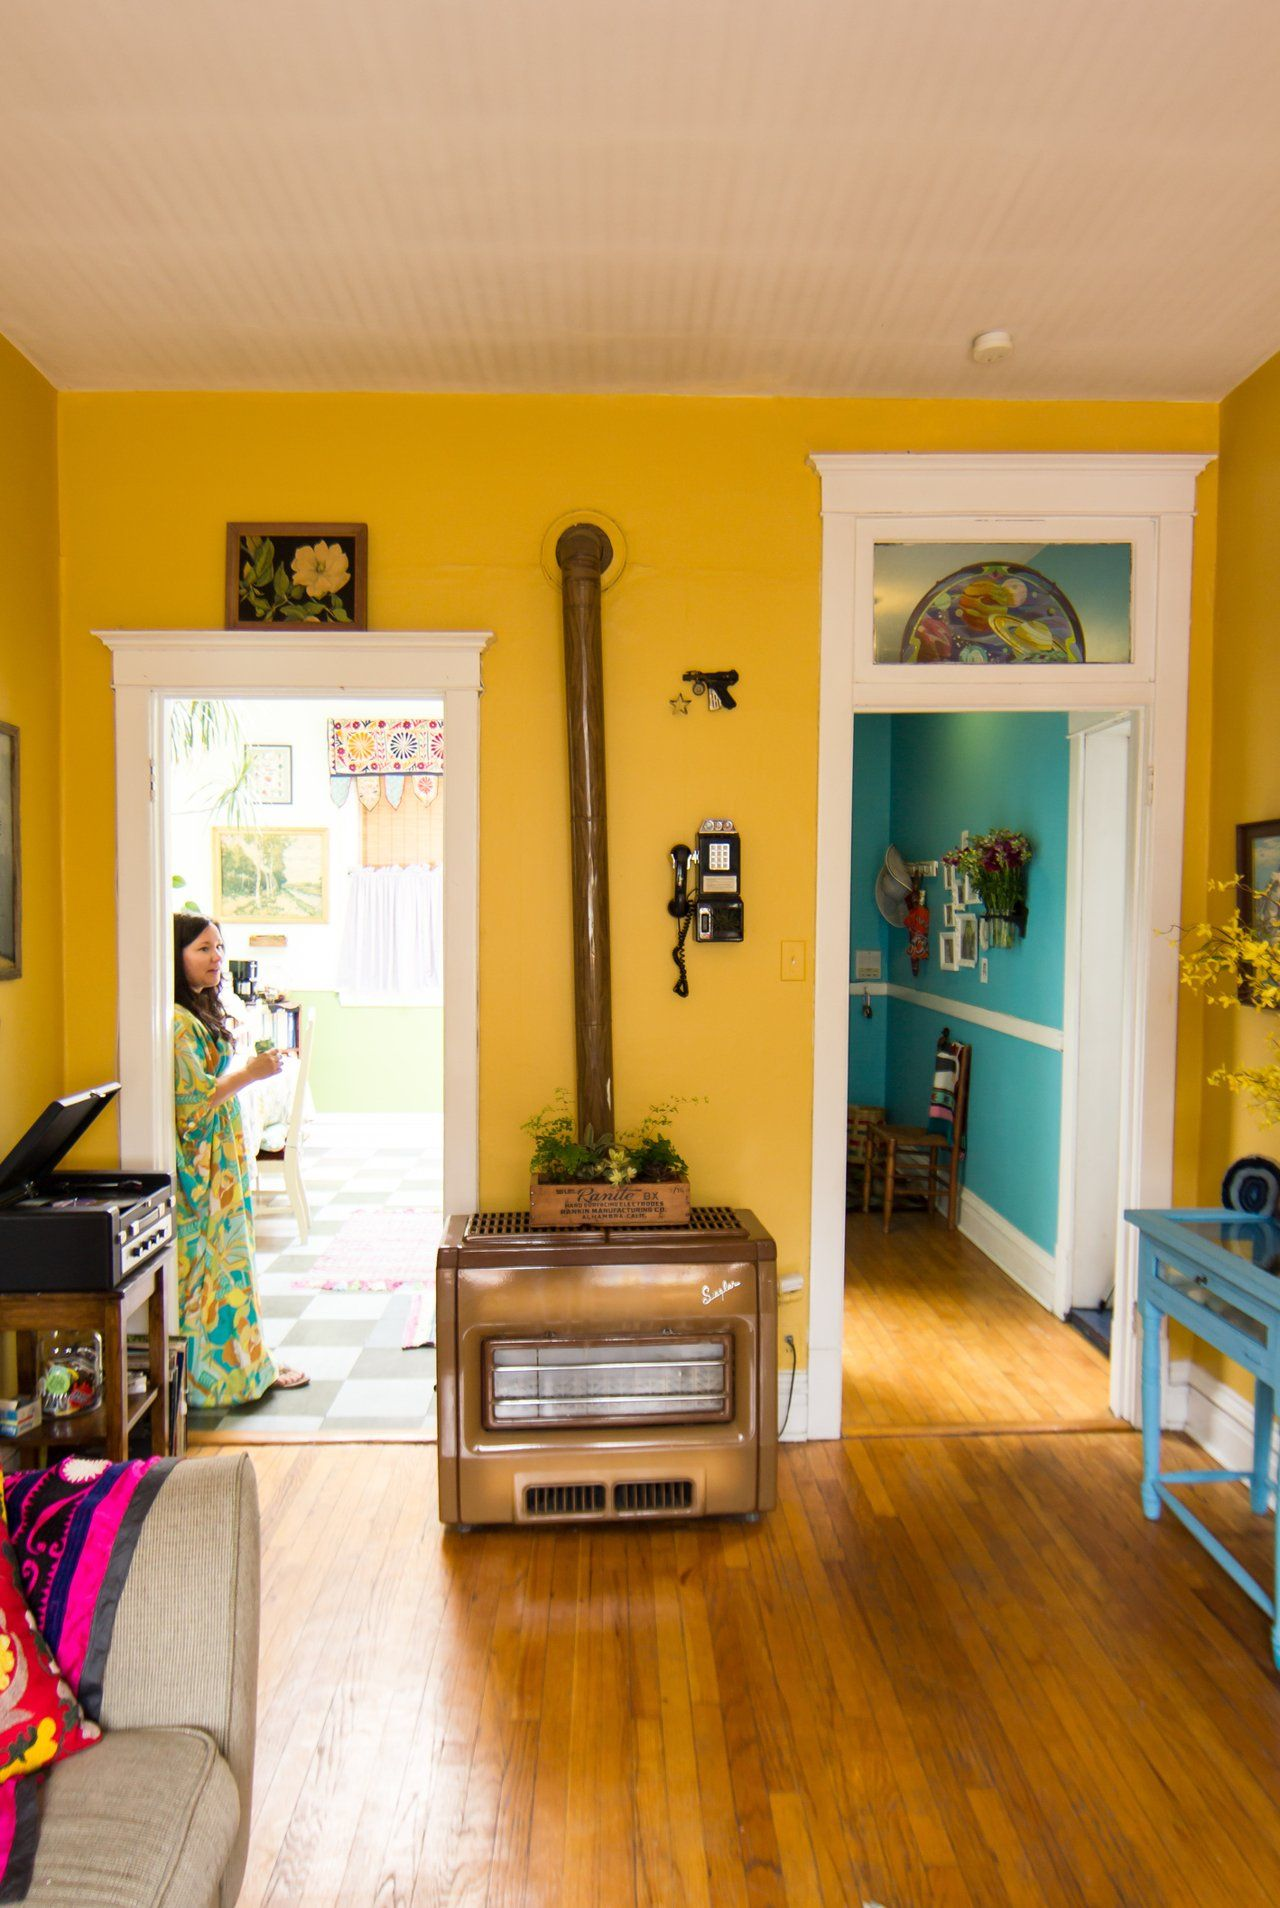 Amys vintage jewel tone apartment yellow walls bedroom yellow hallway paint yellow painted rooms